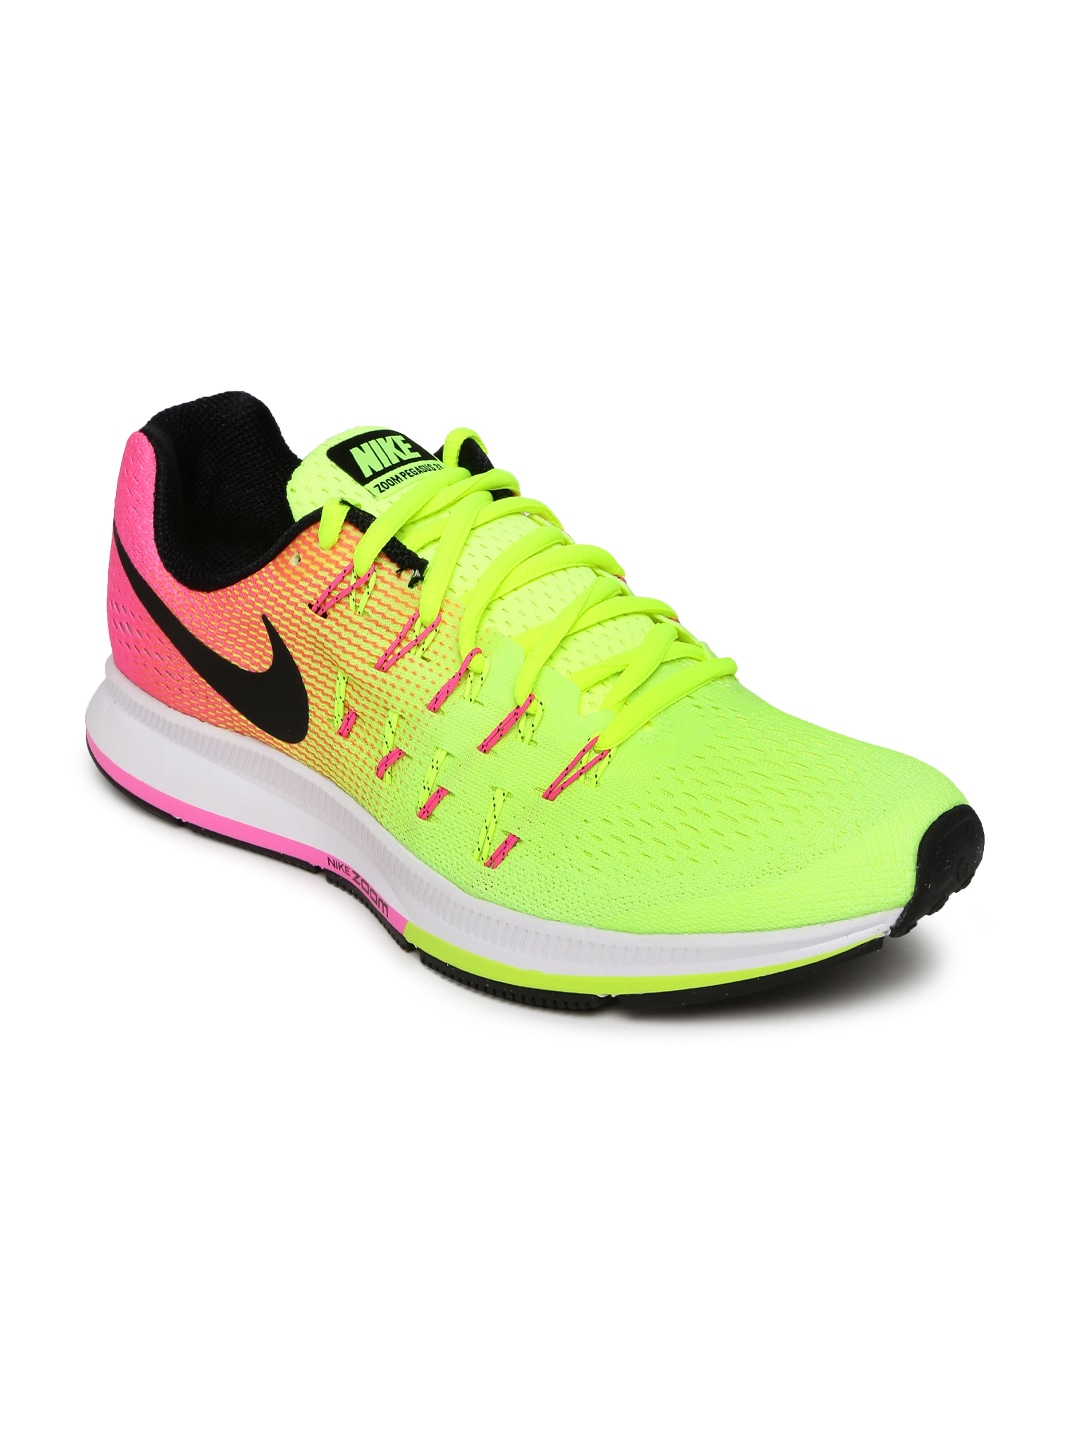 new styles 4a2fe 81255 11469173771717-Nike-Men-Fluorescent-Green--Pink-AIR -ZOOM-PEGASUS-33-OC-Running-Shoes-7881469173771458-1.jpg